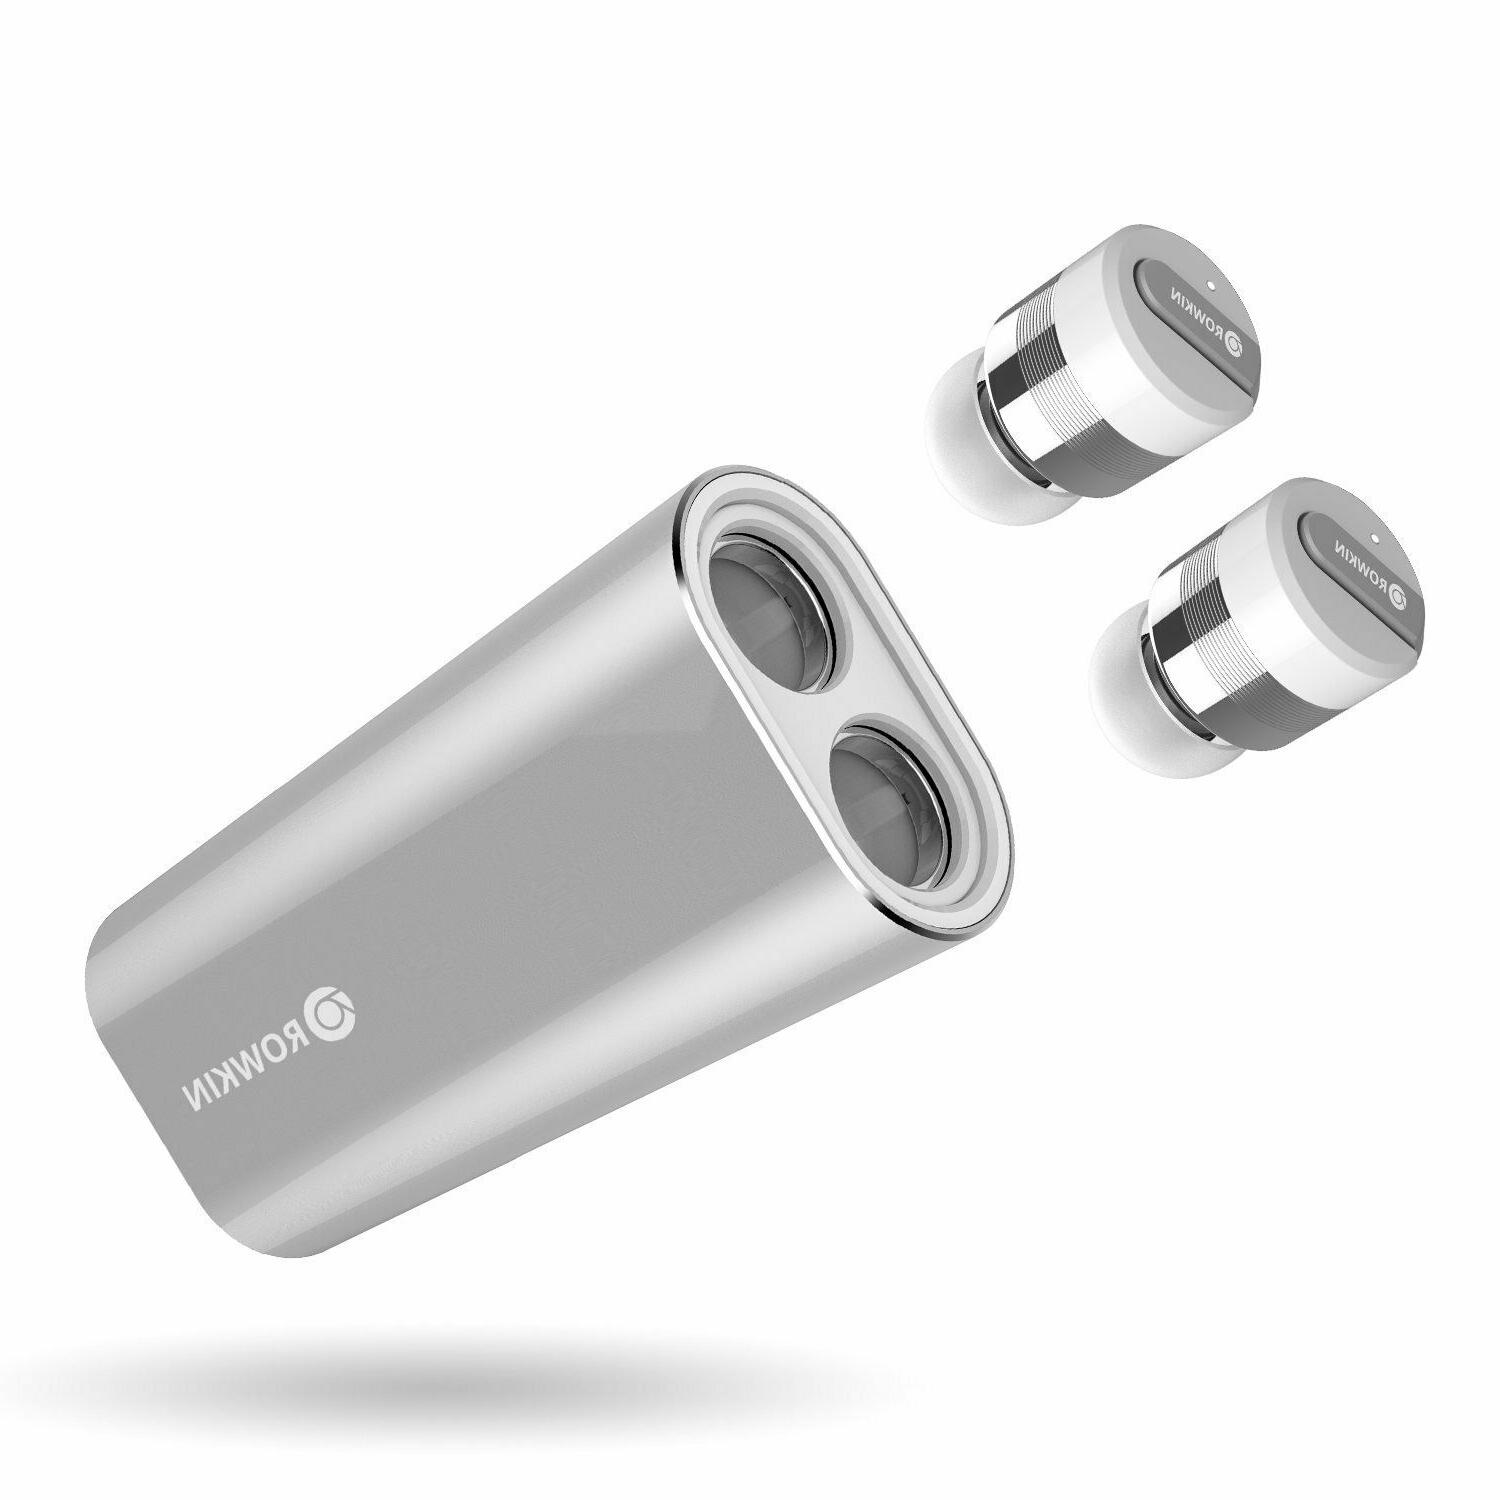 Rowkin Stereo: True Earbuds Case. Bluetooth Headphones Cordless Hands-Free Headset & Reduction for iPhone